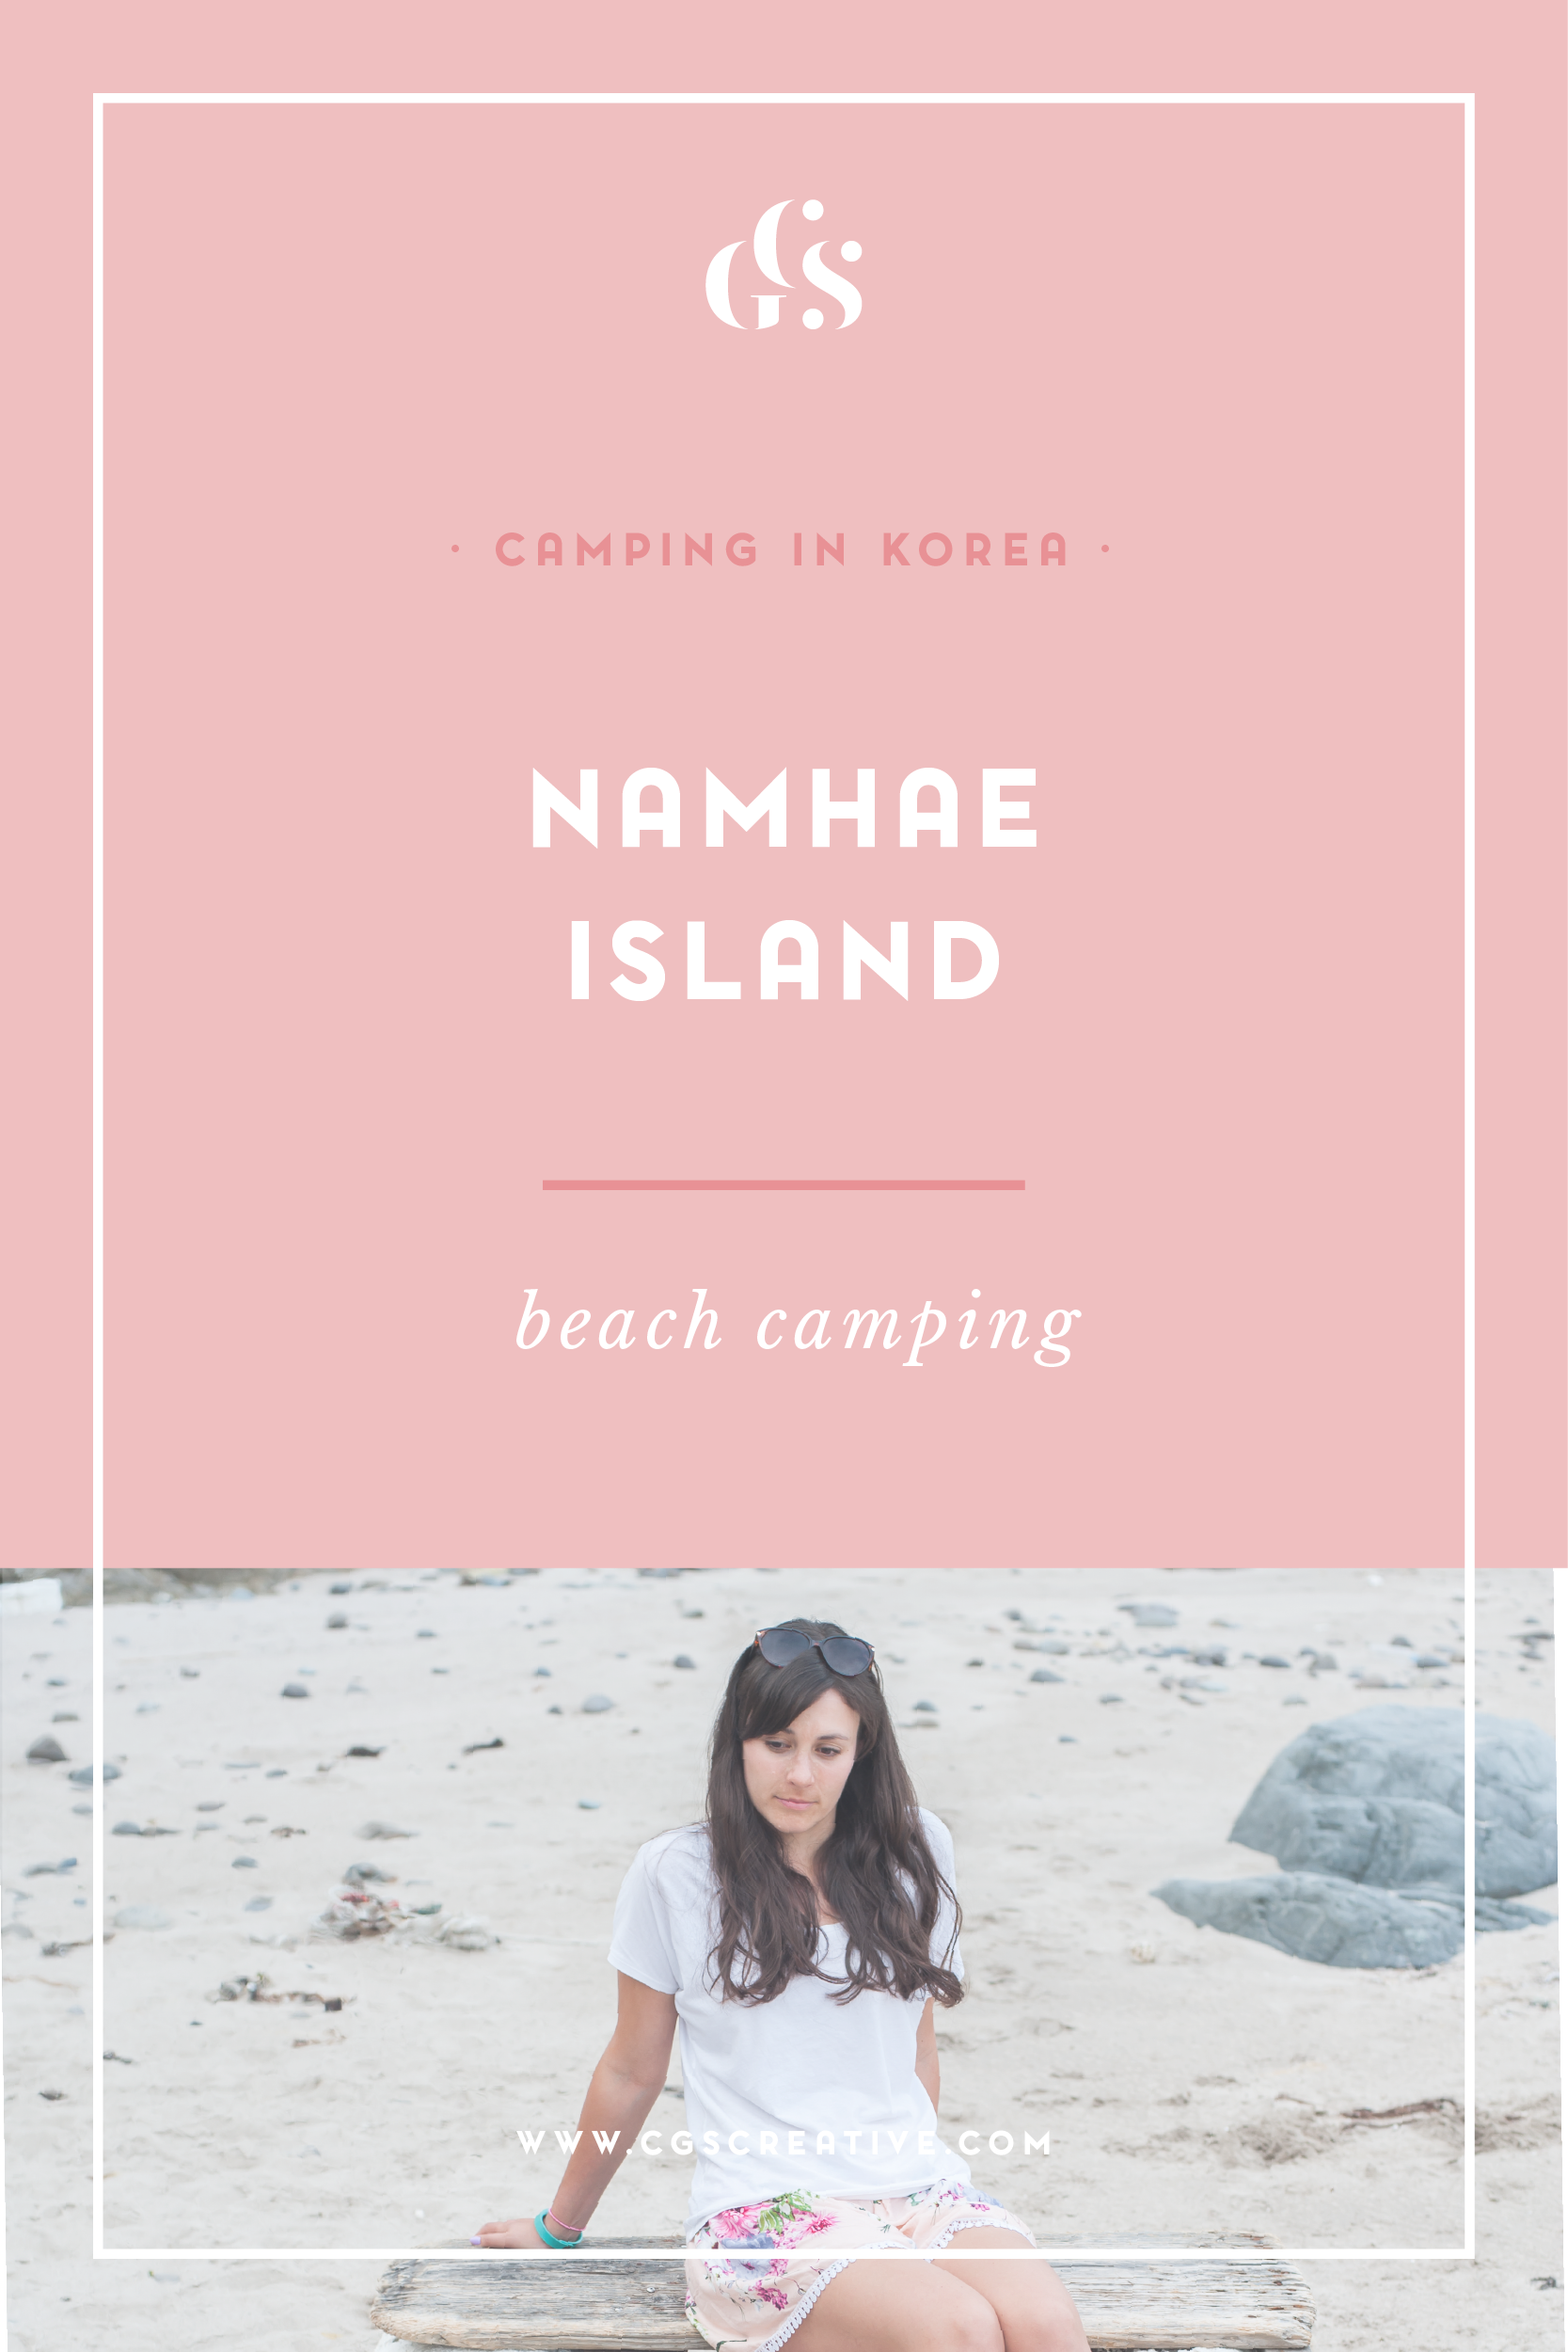 Camping On Namhae Island, Korea. Camping on the beach in Korea